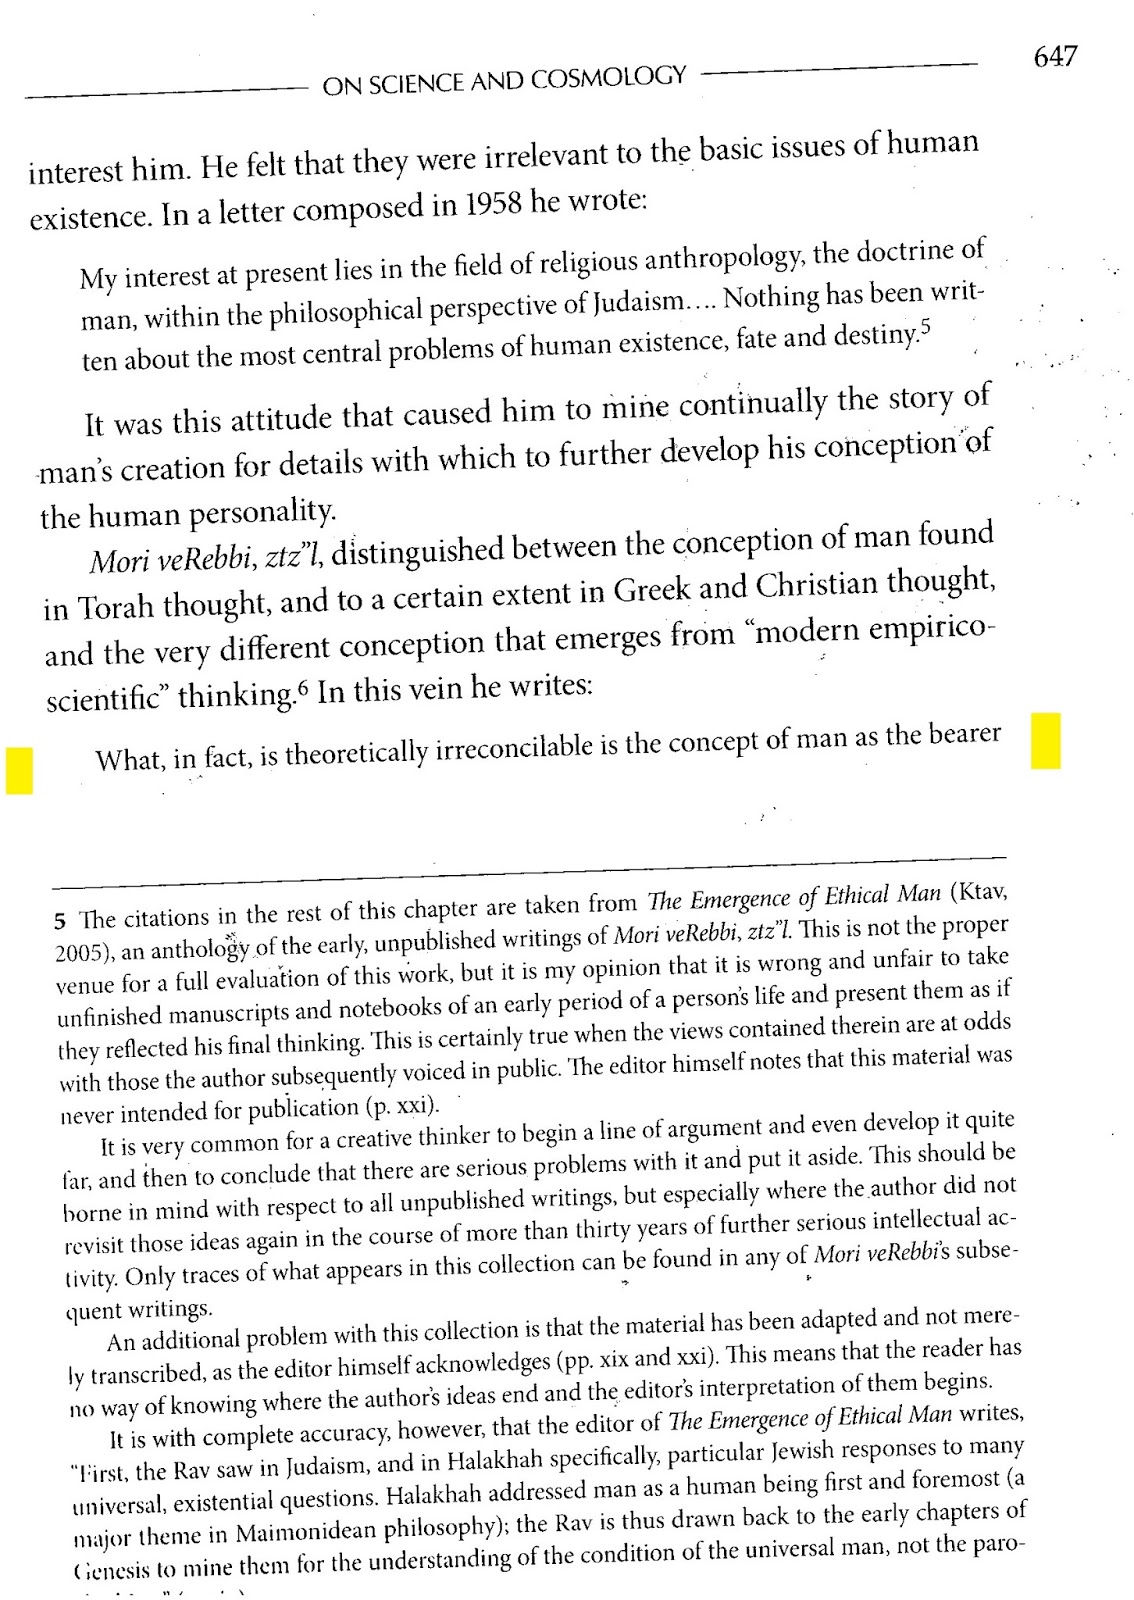 Rationalist judaism an assault on truth and here are the original pages from the emergence of ethical man with the relevant paragraphs which completely refute the earlier quoted paragraph fandeluxe Image collections